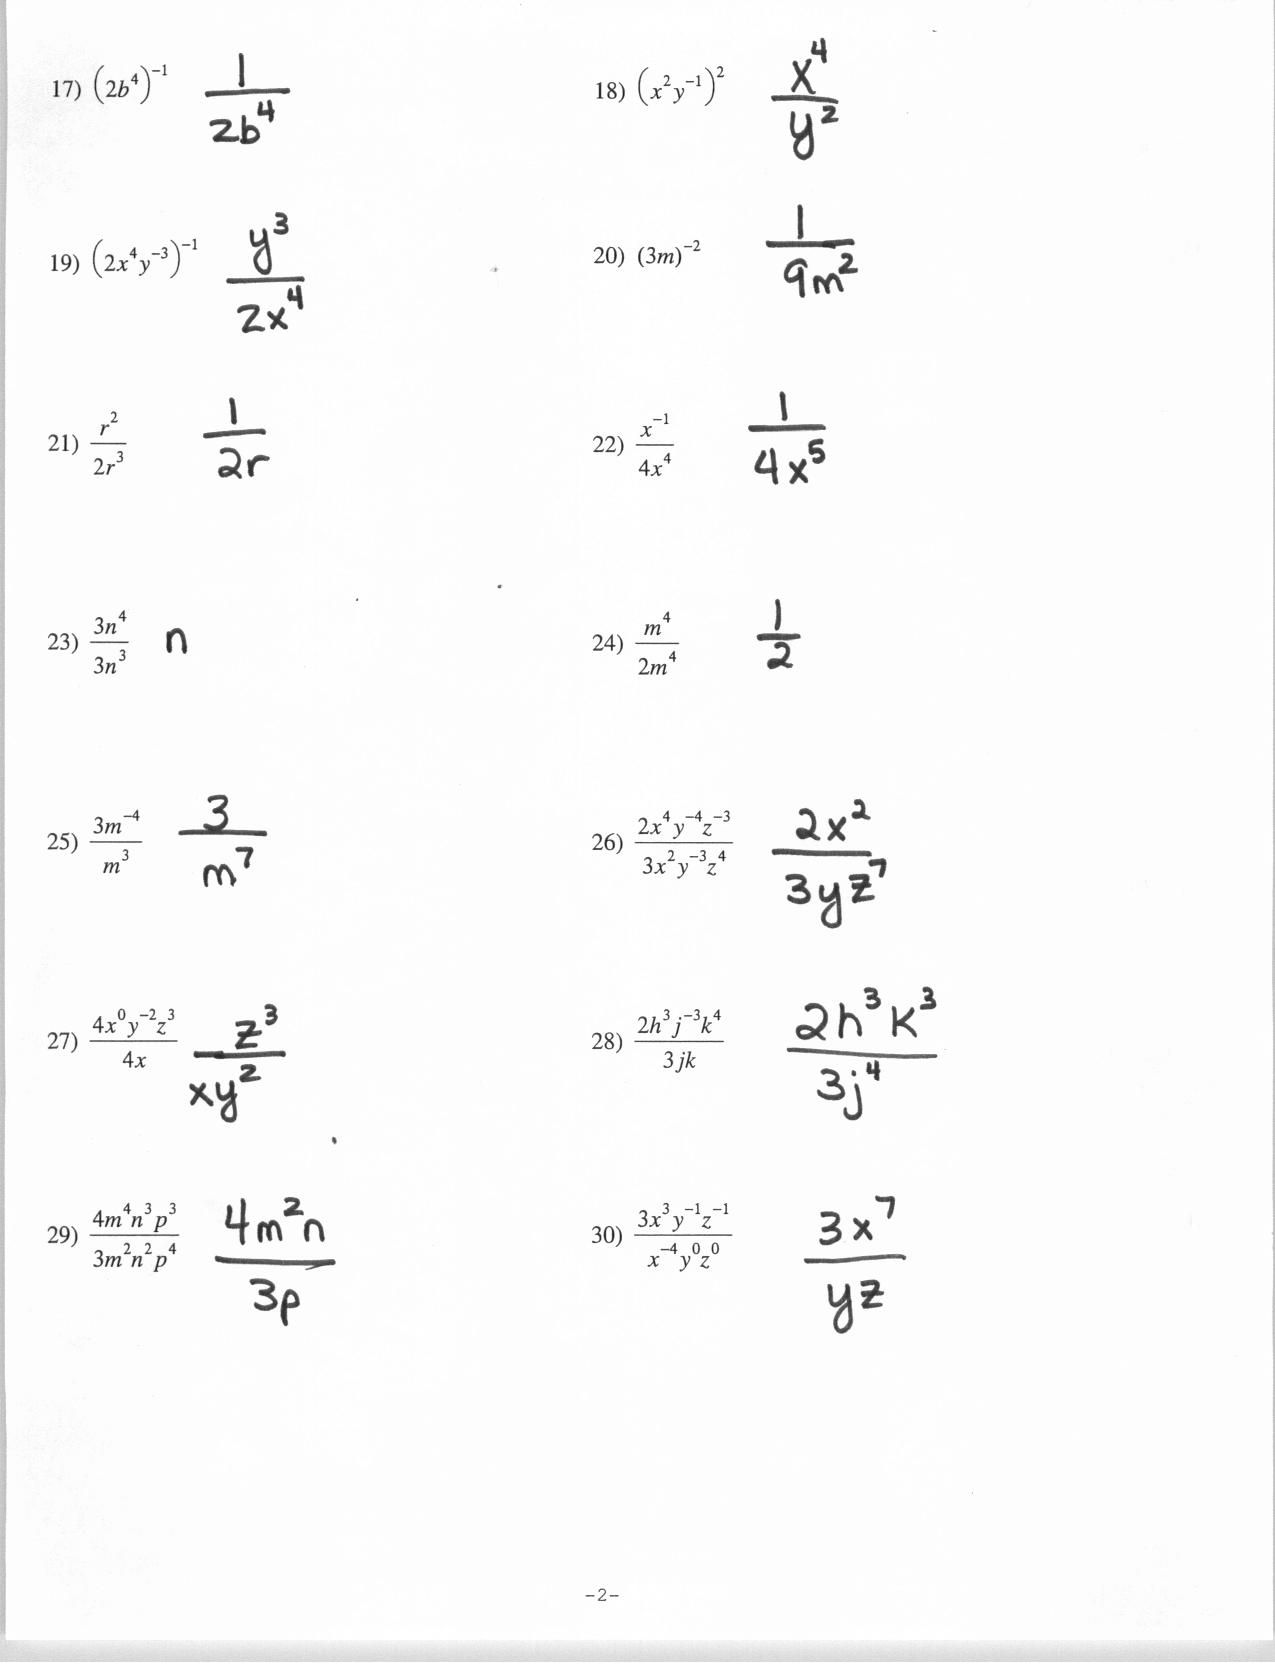 math worksheet : exponents and division worksheet kuta  exponents and ision  : Exponent Multiplication Worksheet